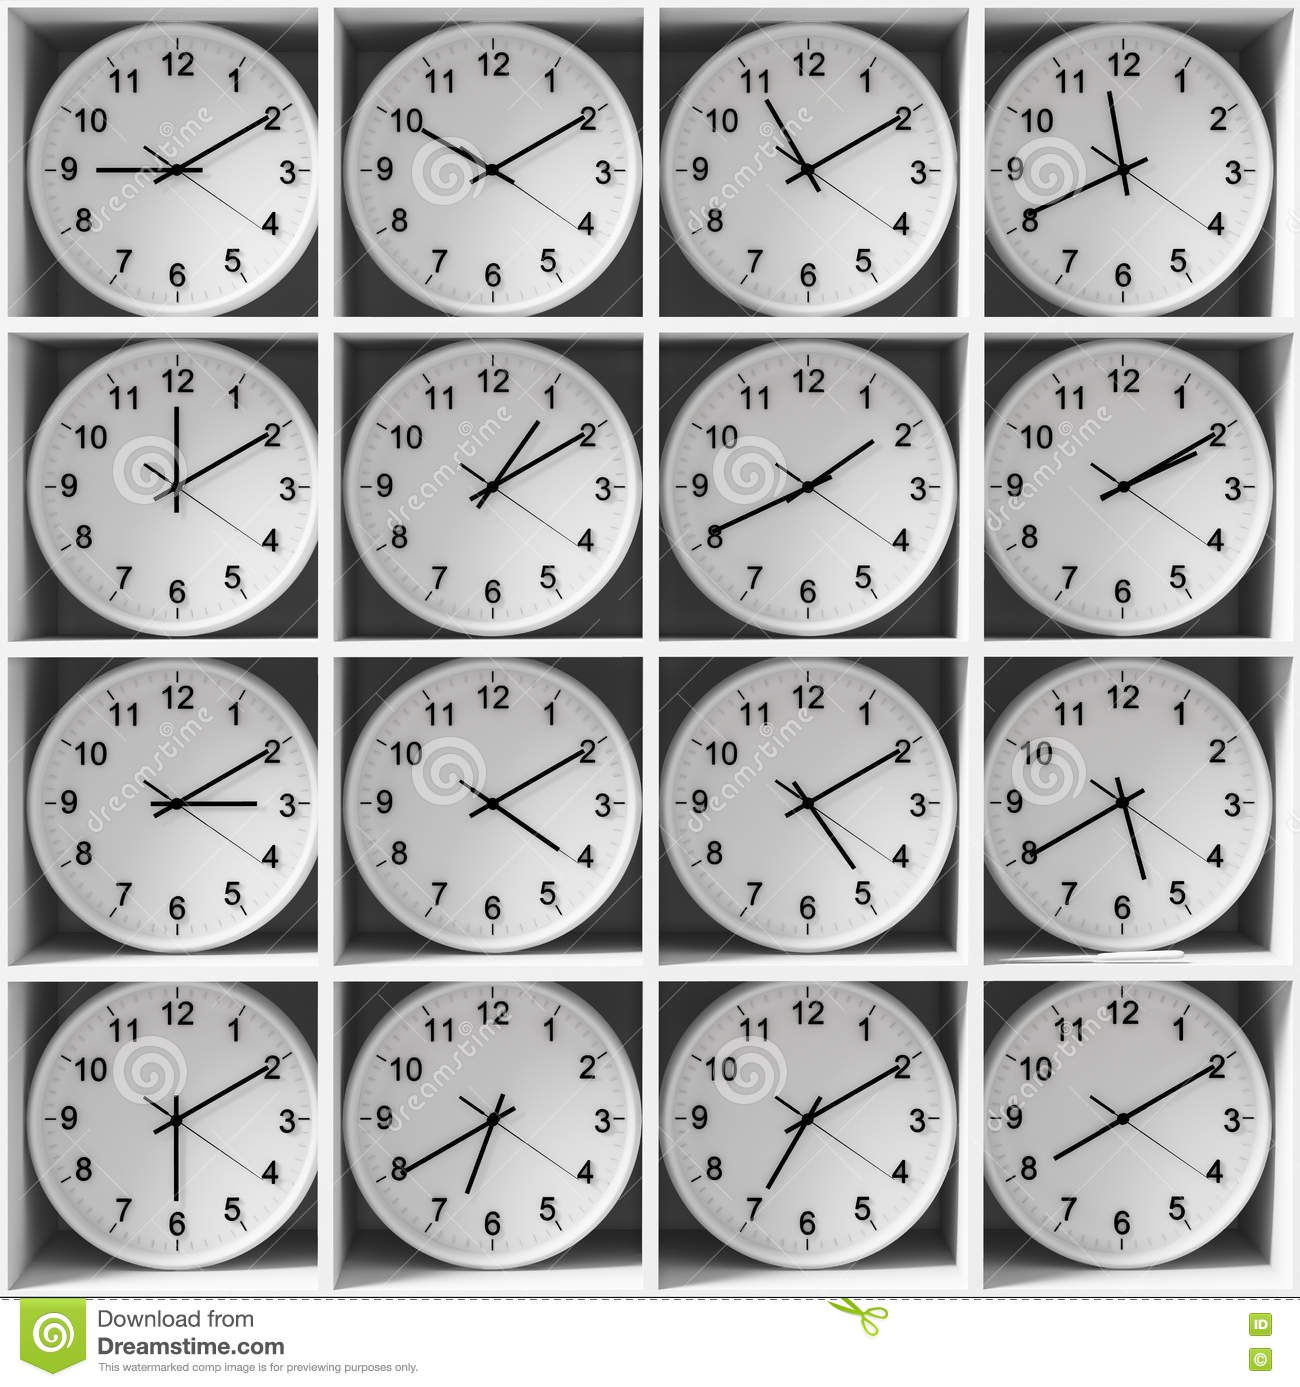 how to read differnt zones times in a watch